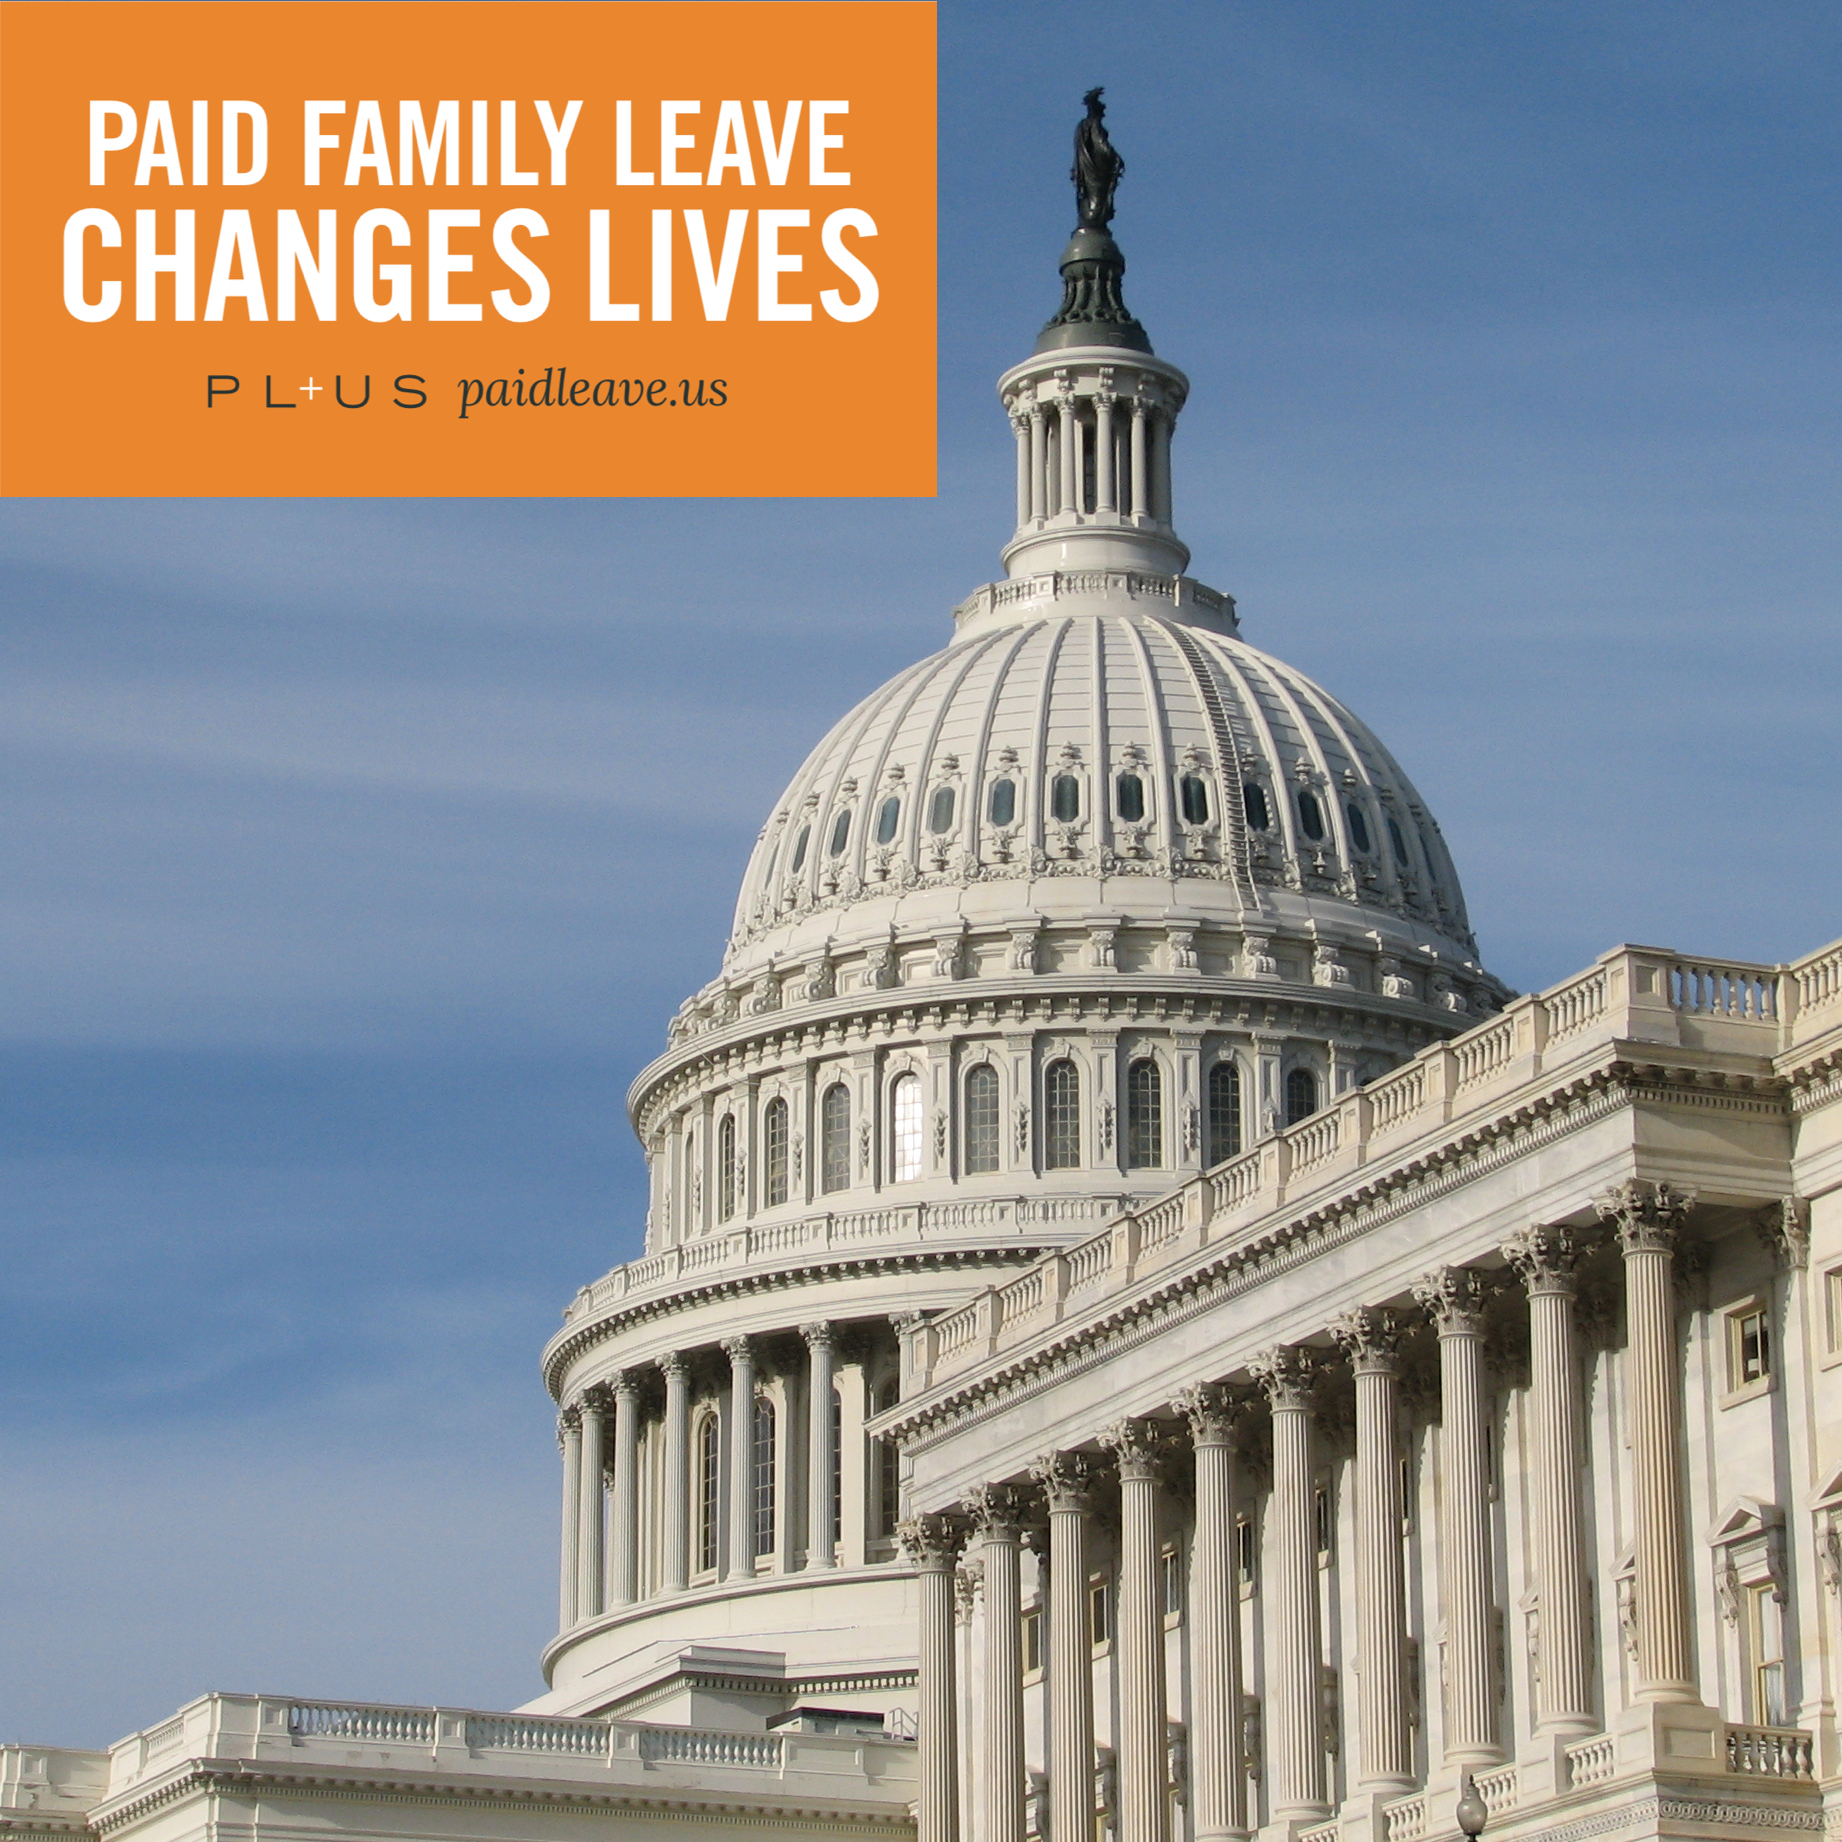 BREAKING: House Ways and Means Committee Hearing - On Wednesday May 8th, the House Ways and Means Committee will be holding a hearing on Paid Family Leave. Your story about Paid Family Leave is critical for moving legislation to the next step.